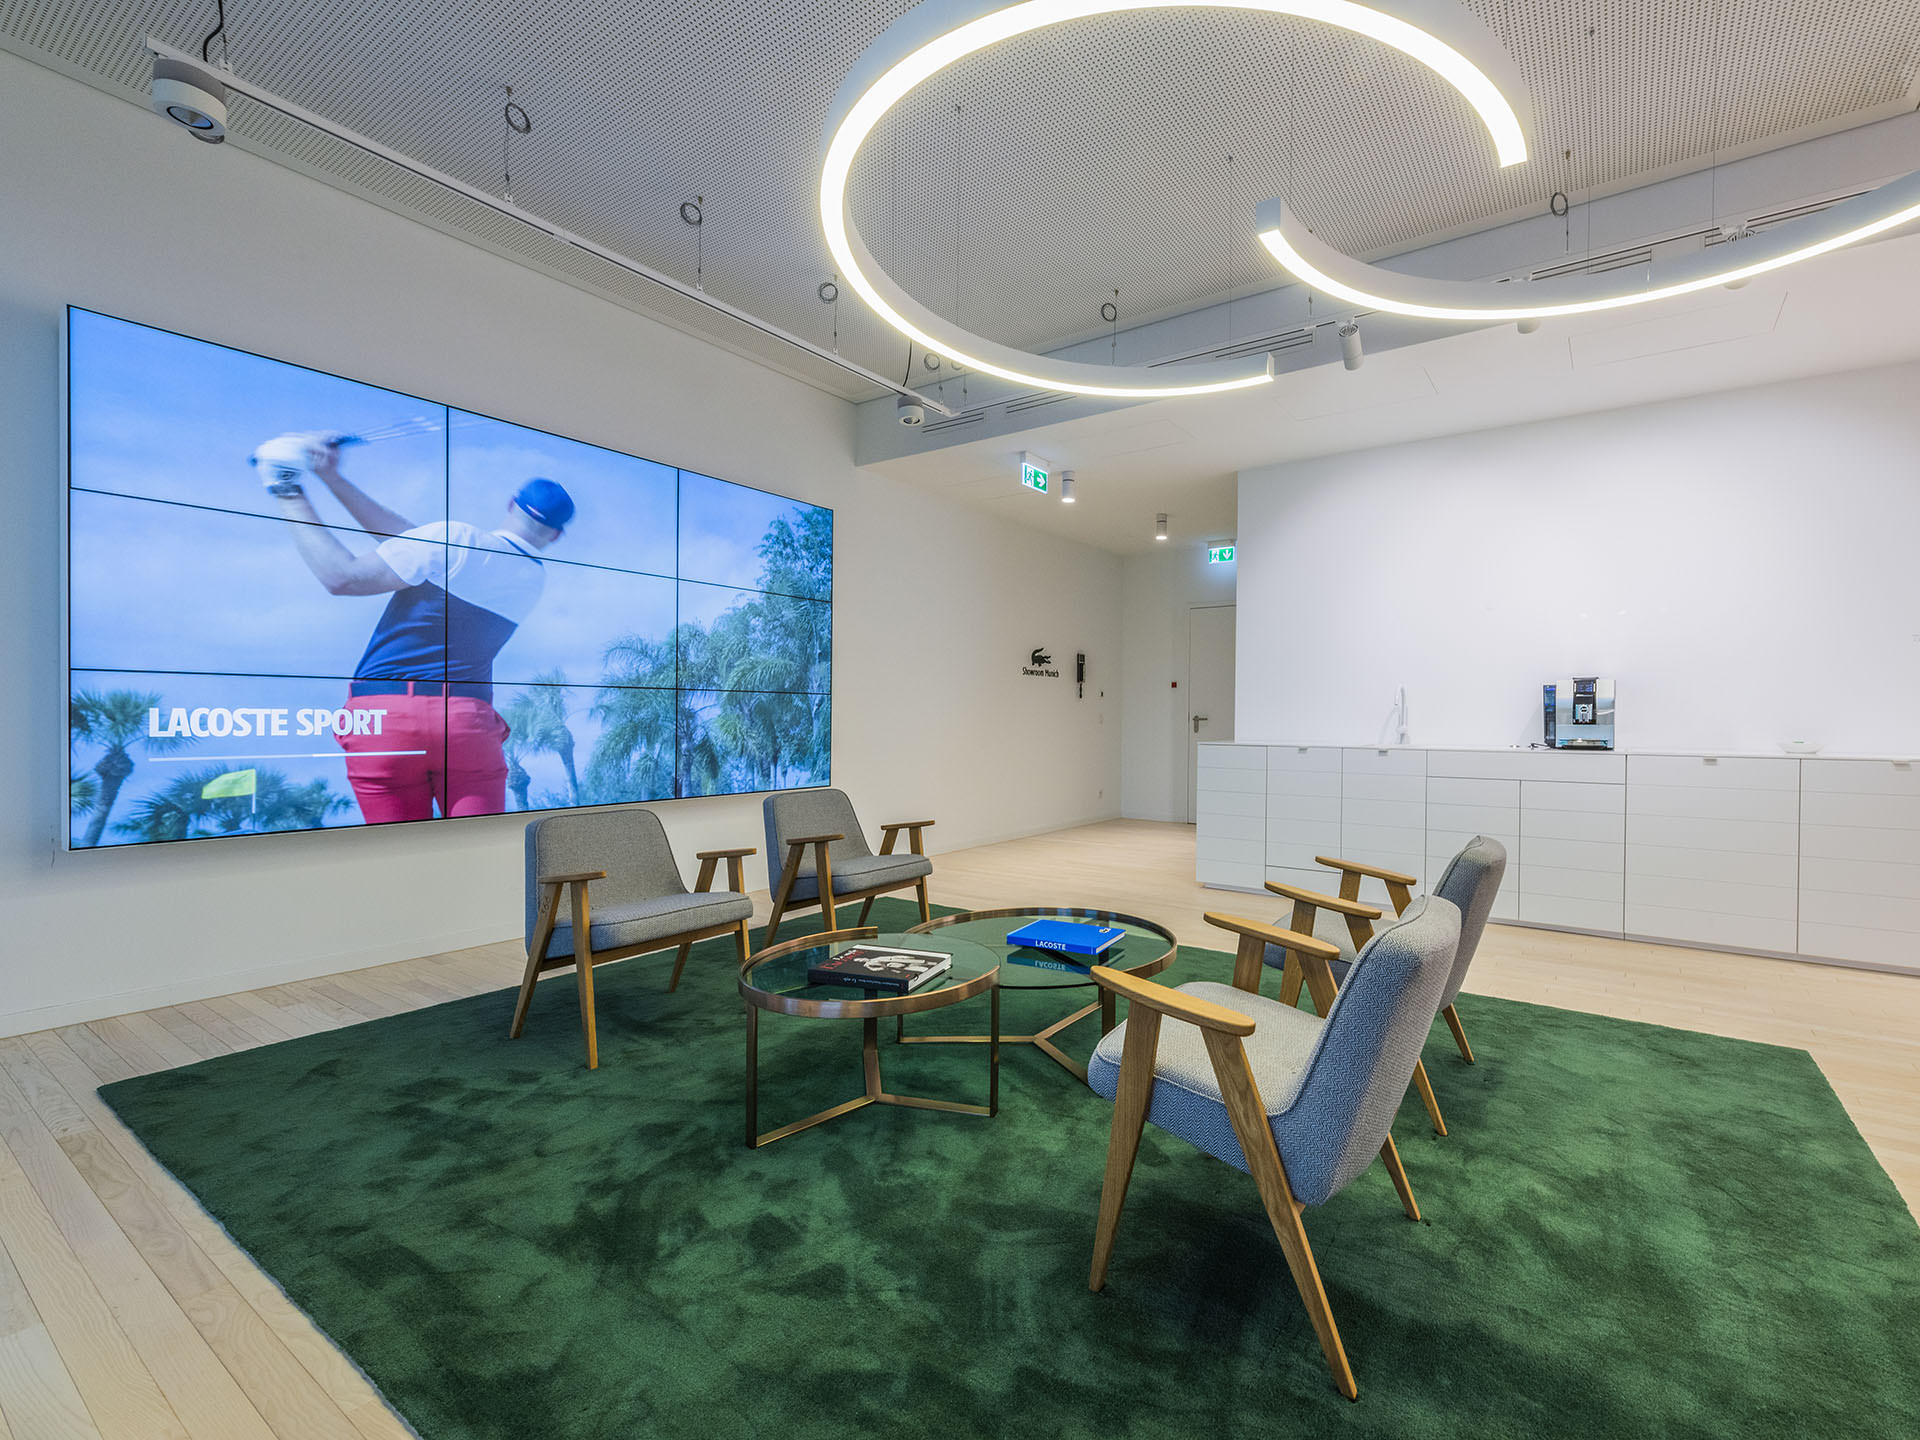 View on an additional seating area inside the Lacoste offices at Schwabinger Tor